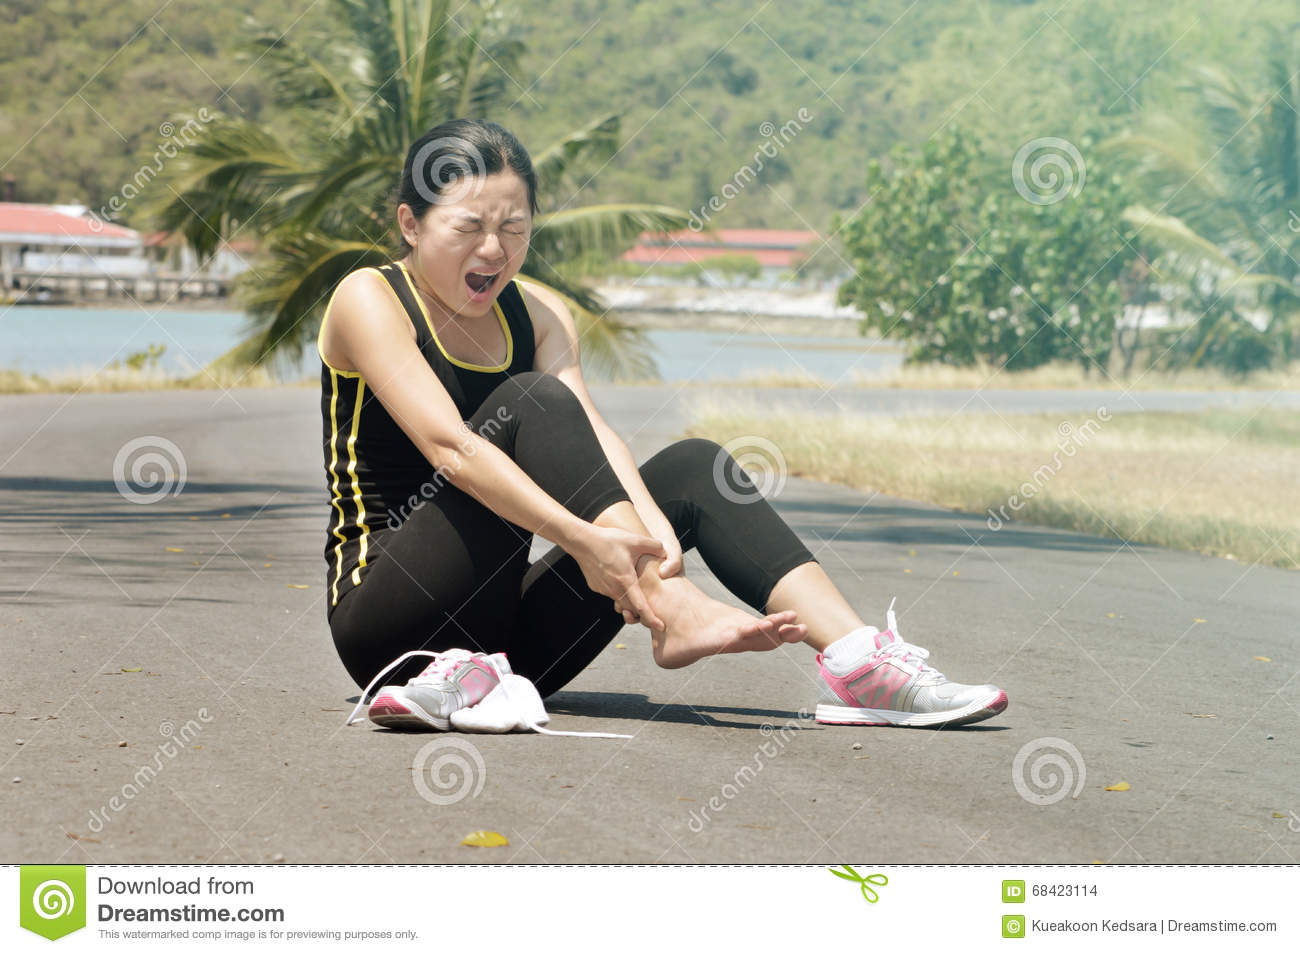 Running Jogging Music Download Woman With Pain In Ankle While Jogging Stock Photo Image